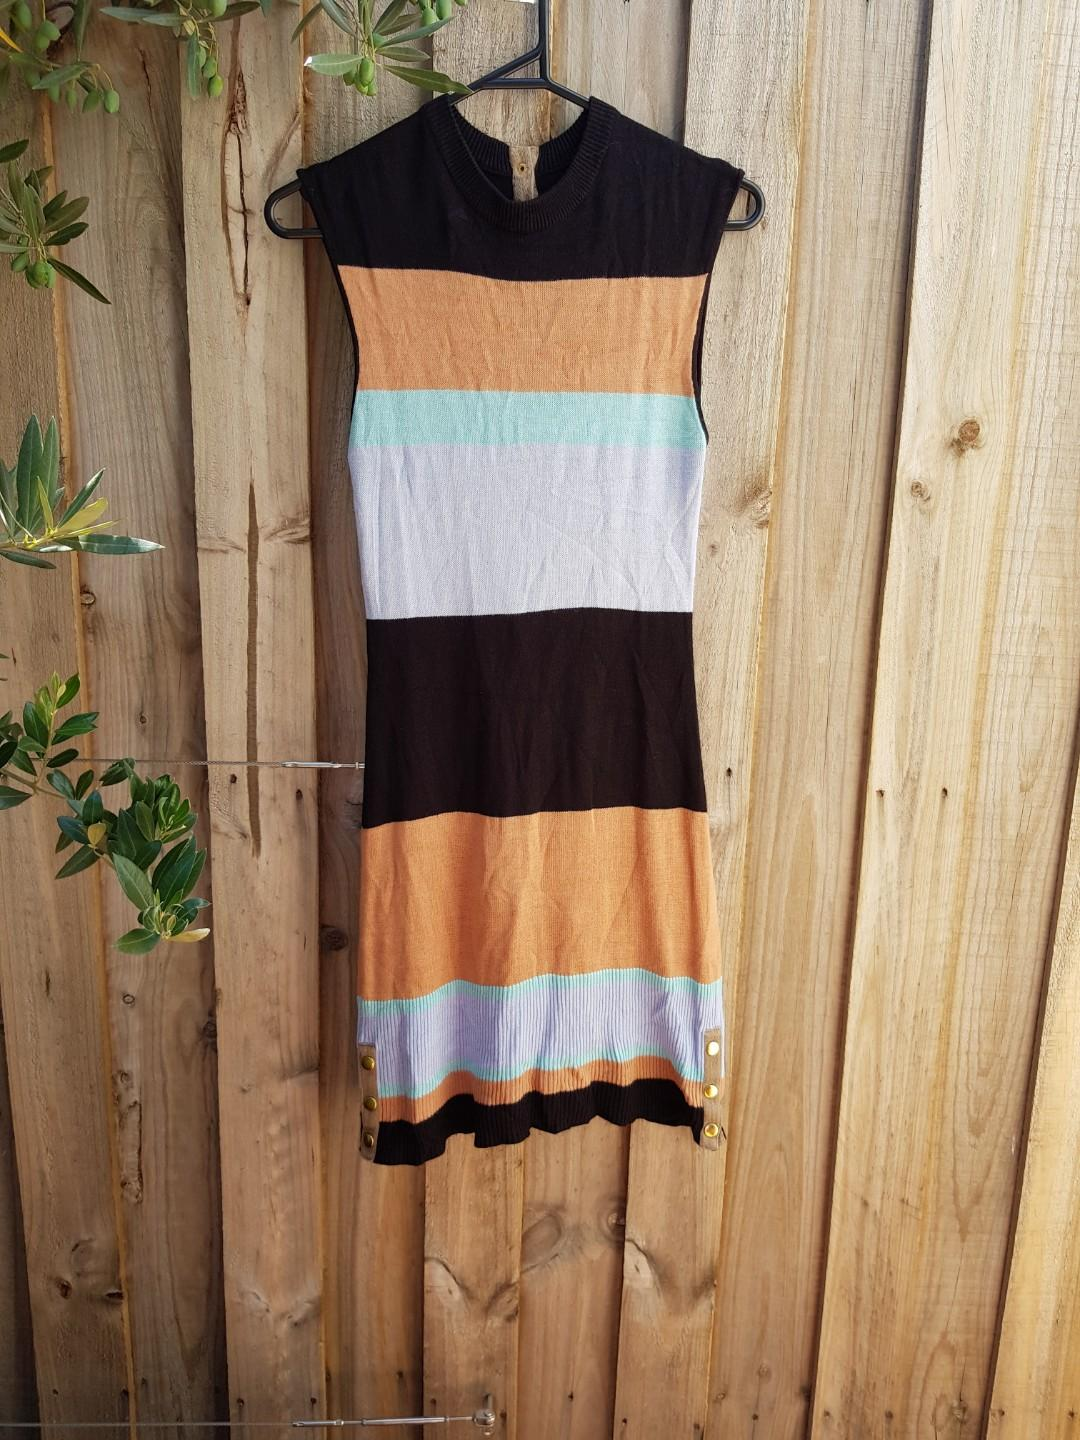 Shona Joy knit sleevless multi coloured dress. Size 8.